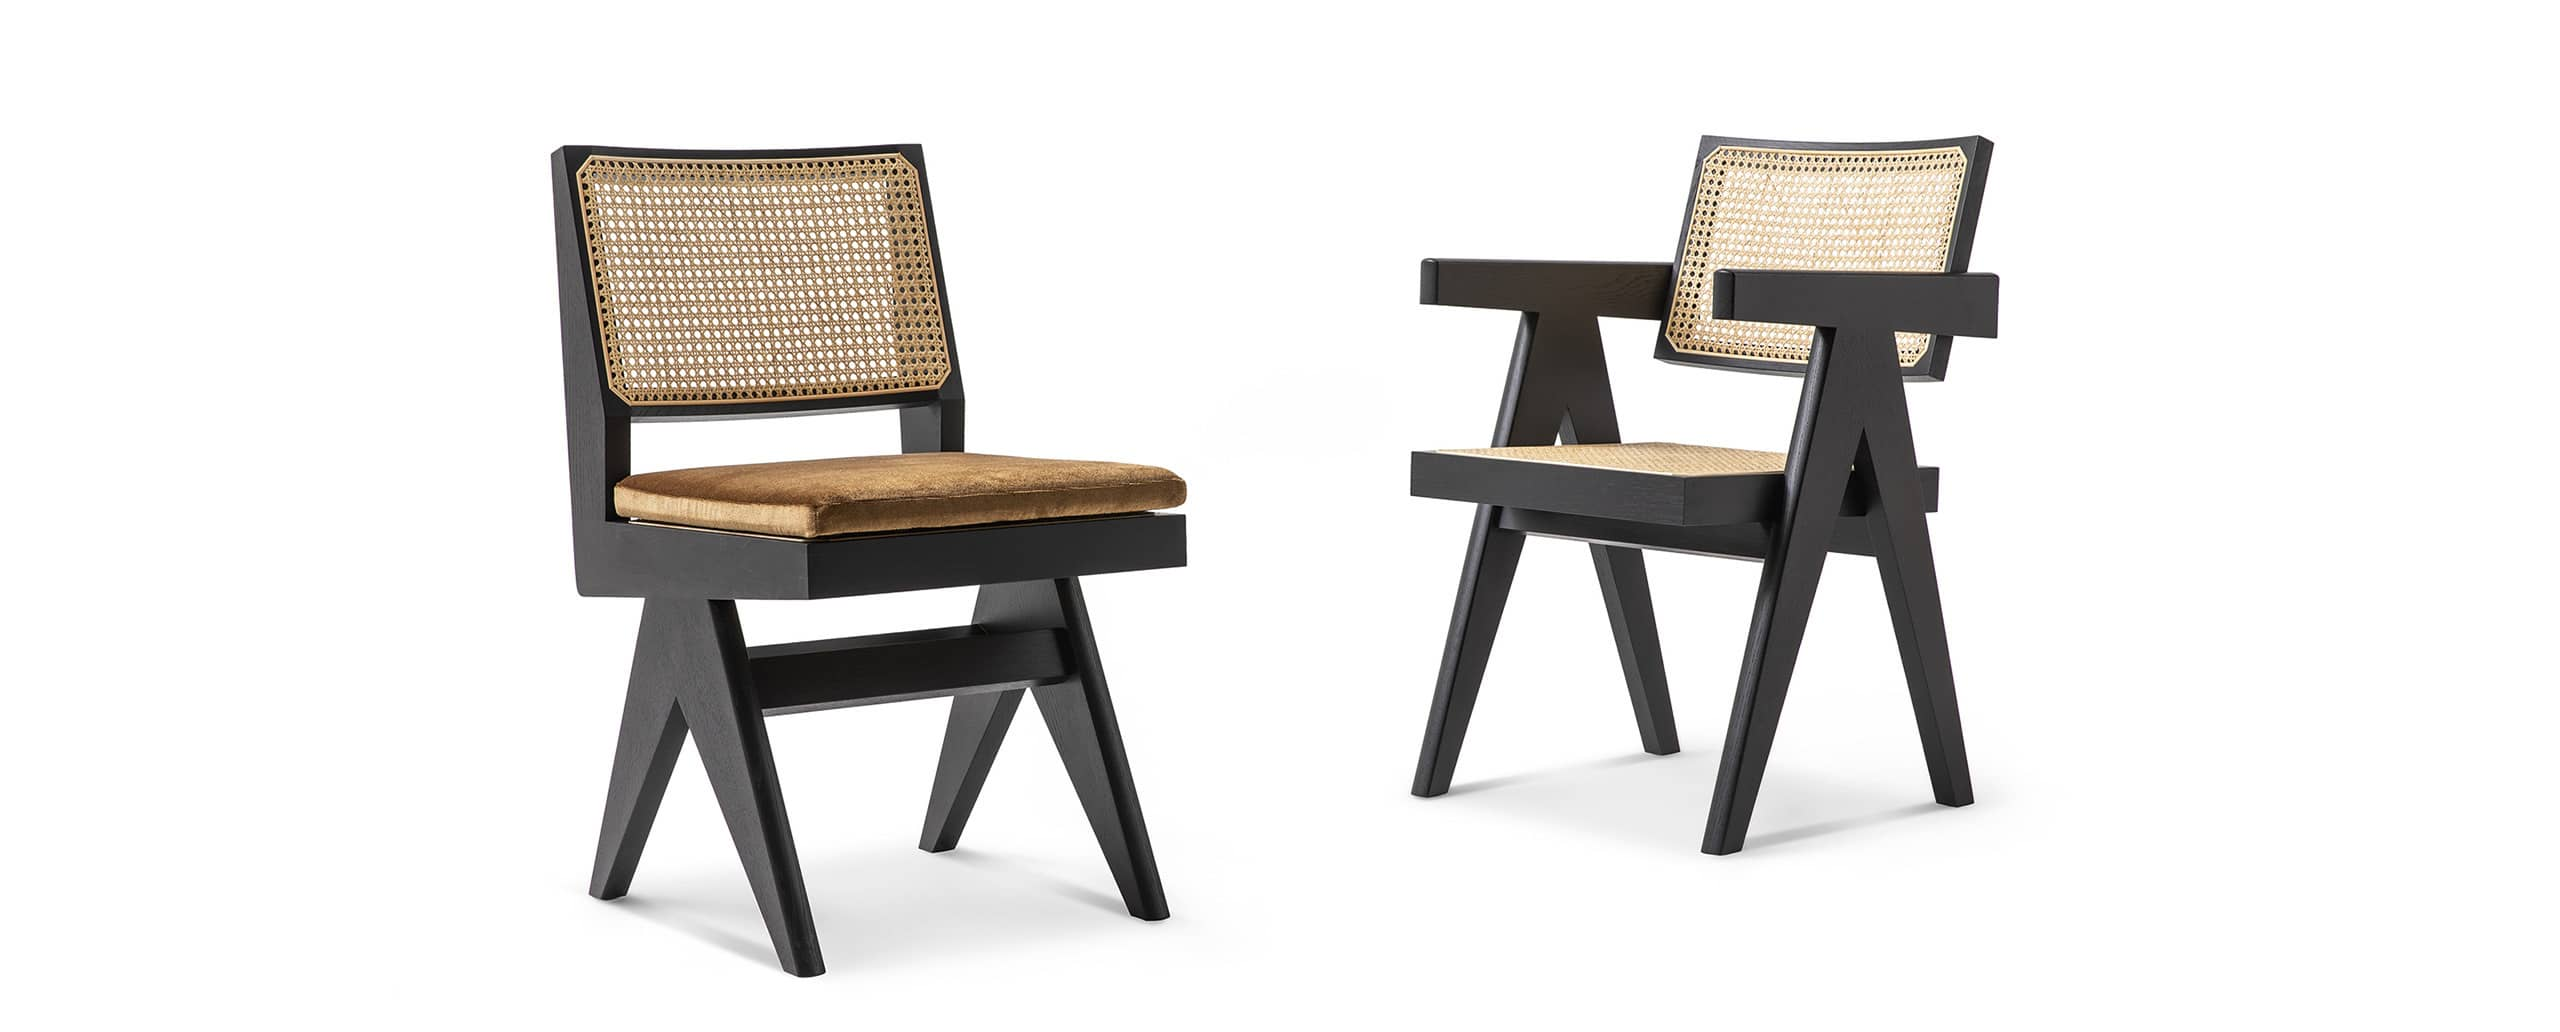 04_cassina_capitol_complex_chair_capitol_complex_office_chair_hommage_o_pierre_jeanneret_cassina_rd